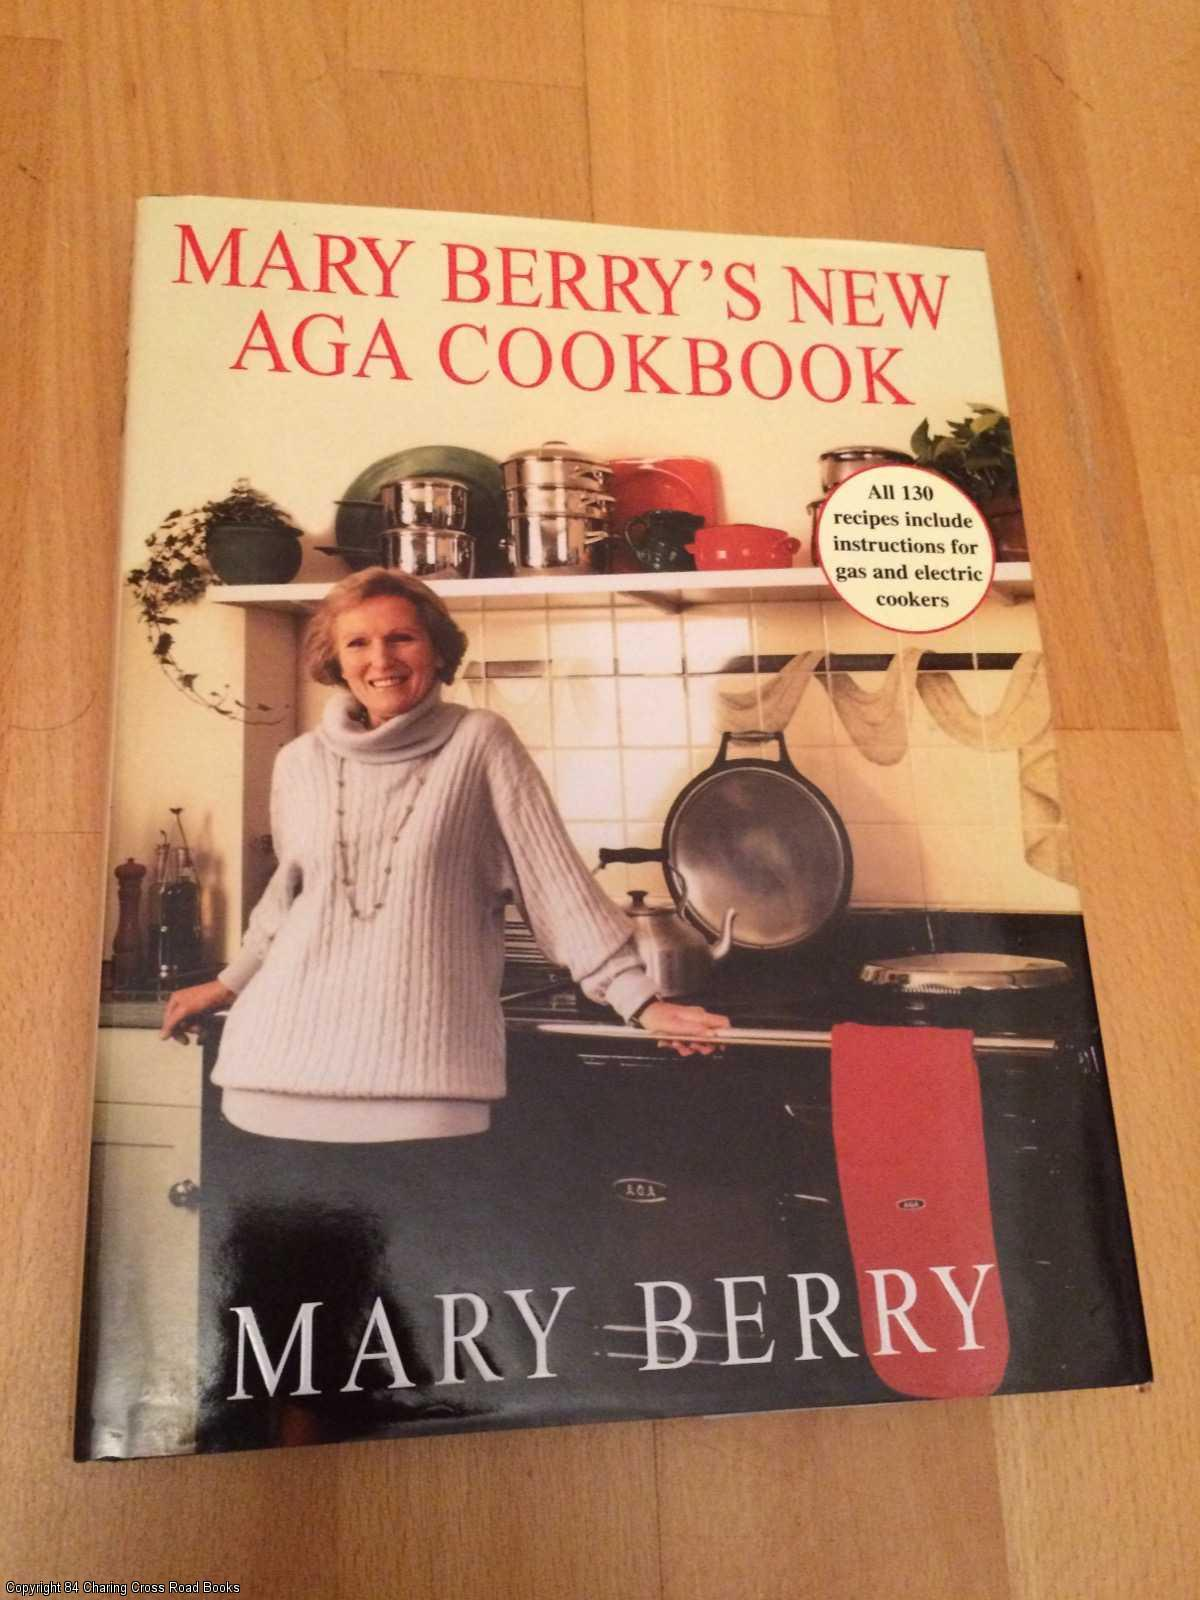 MARY BERRY - Mary Berry's New Aga Cookbook